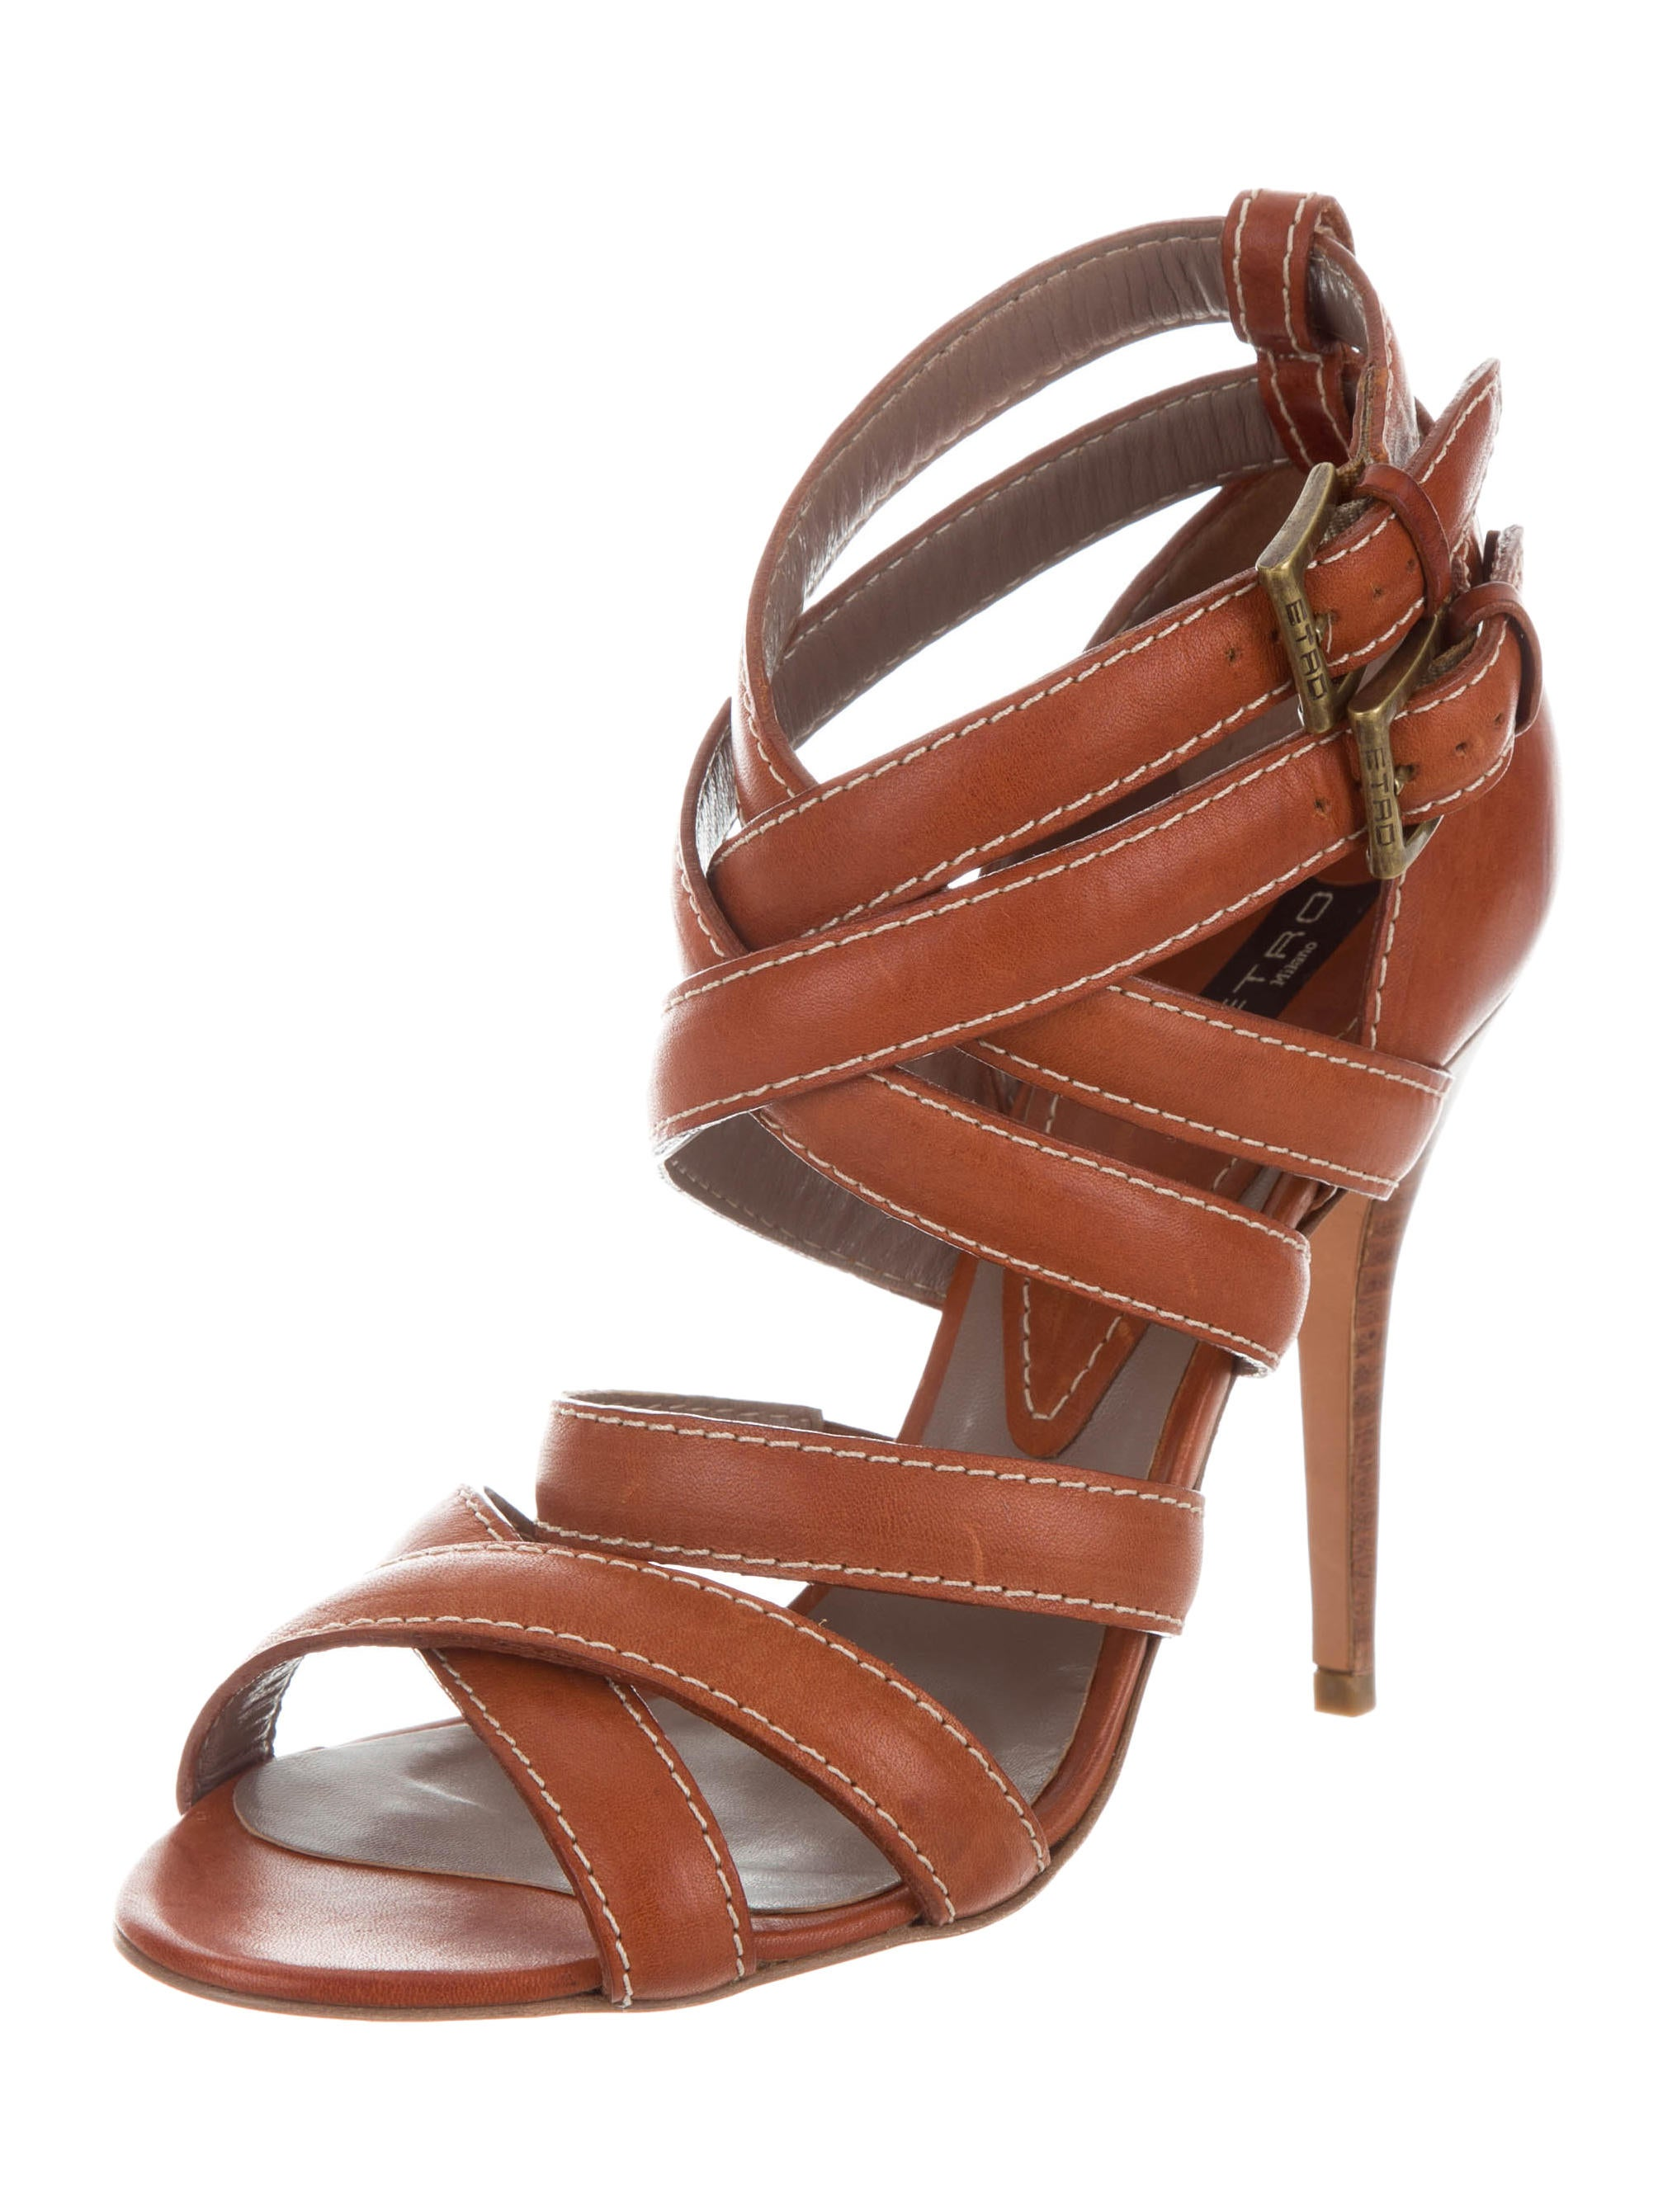 outlet with paypal order online Etro Leather Multistrap Sandals best cheap price klsuHqh6bJ